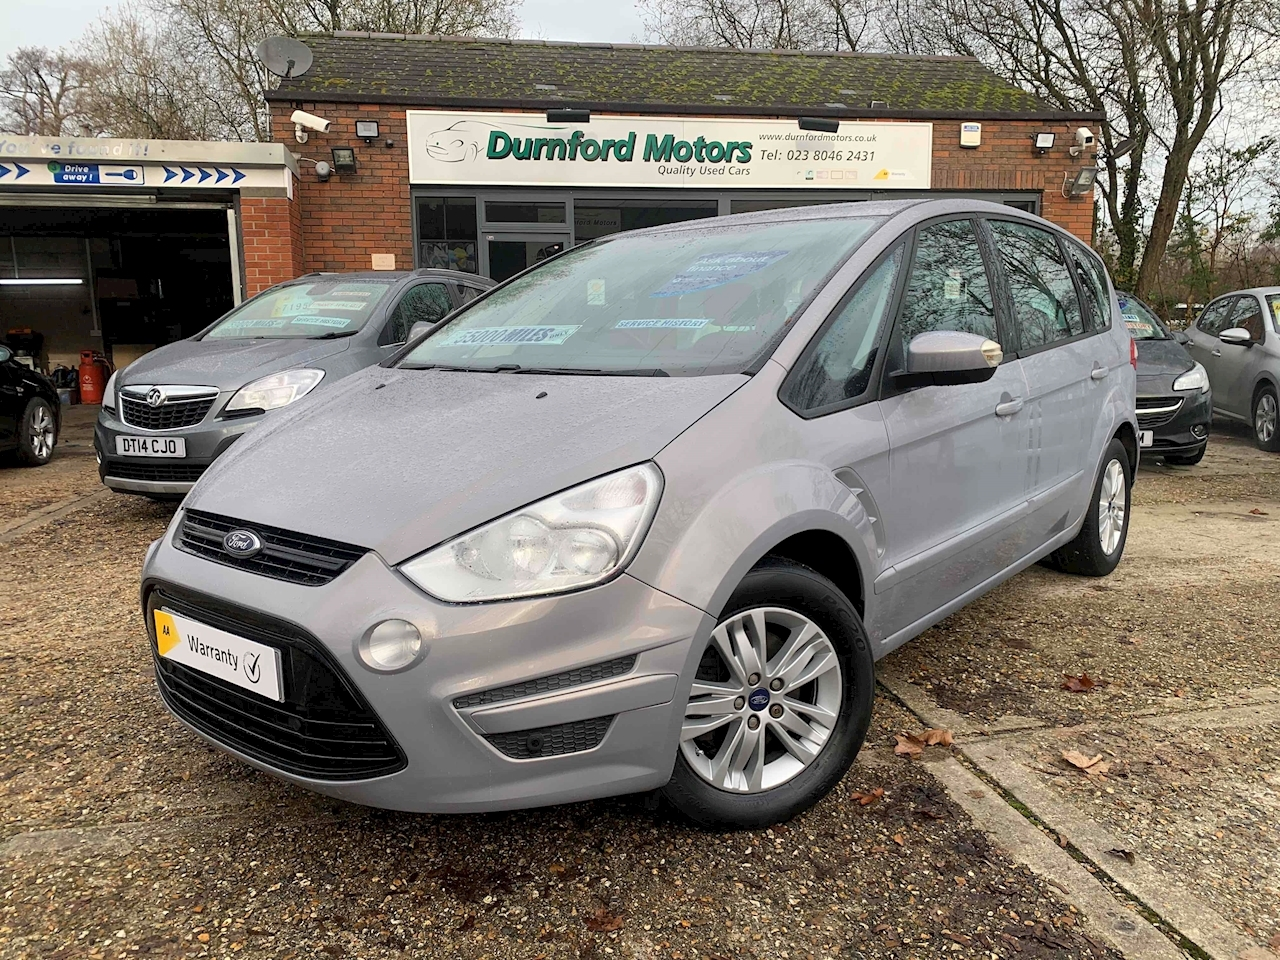 Ford S-Max Zetec MPV 2.0 Manual Diesel